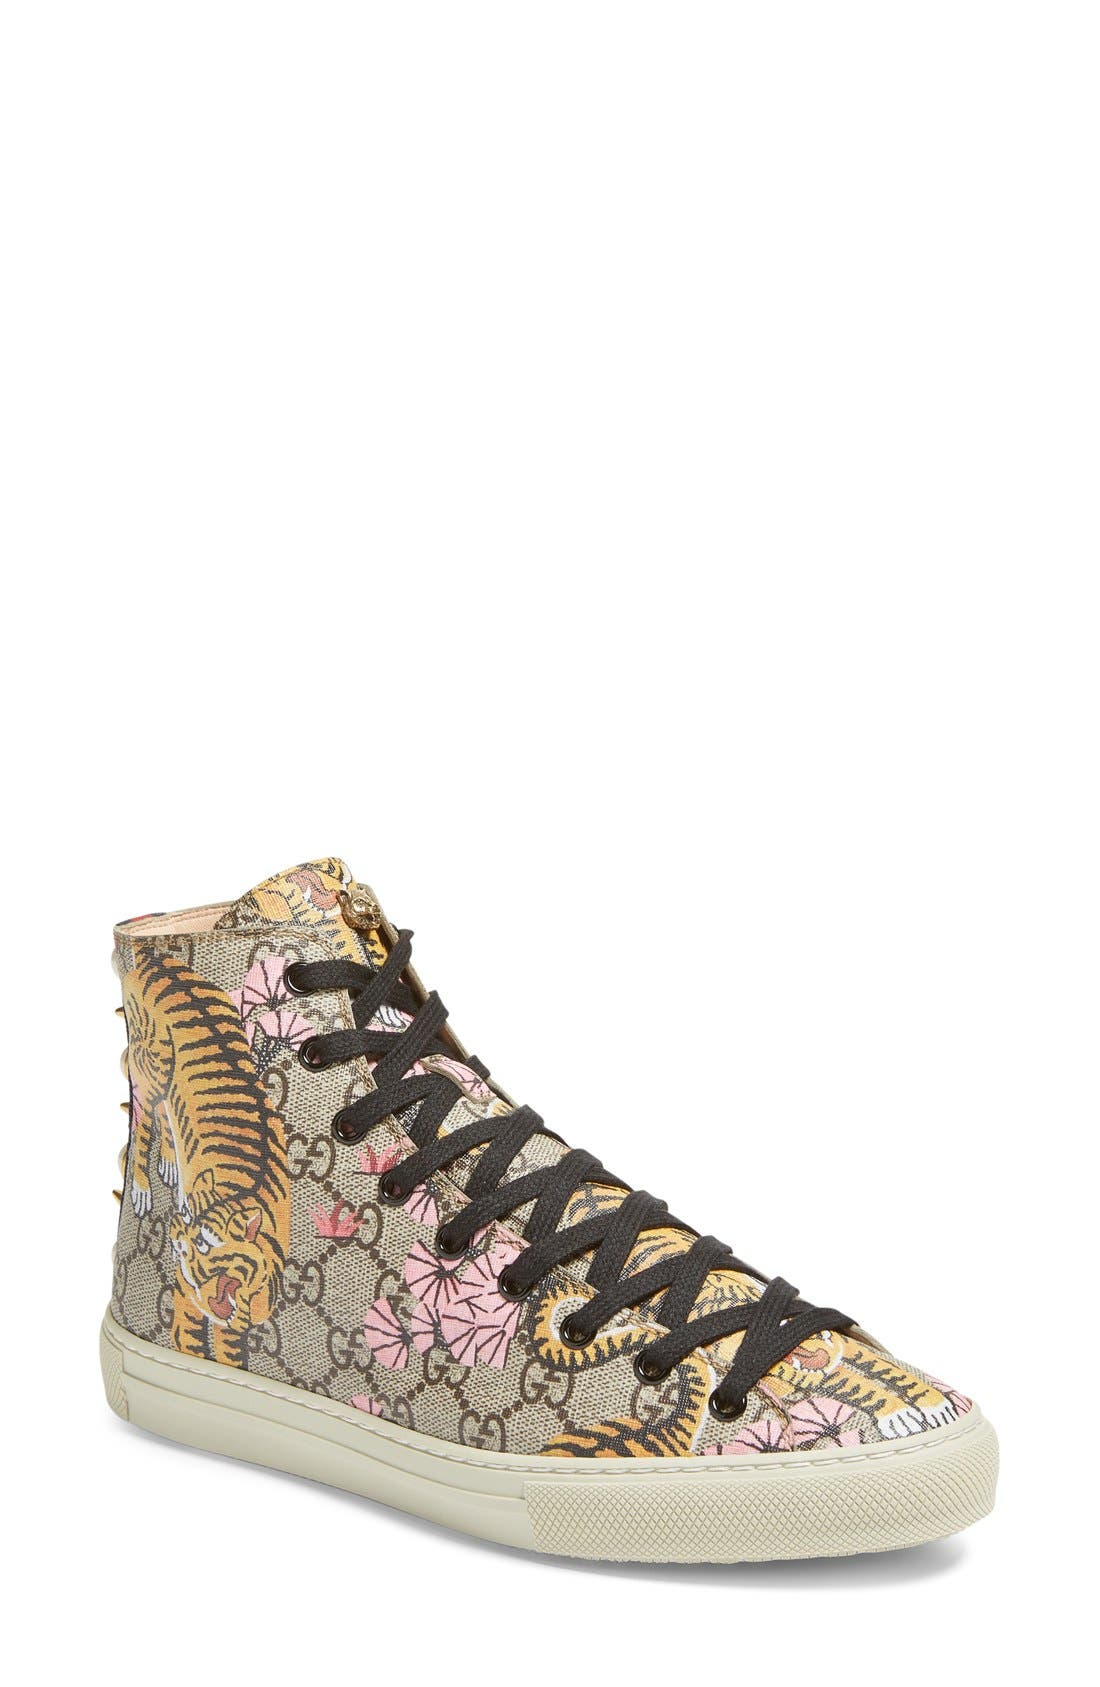 Main Image - Gucci Major Tiger High Top Sneaker (Women)